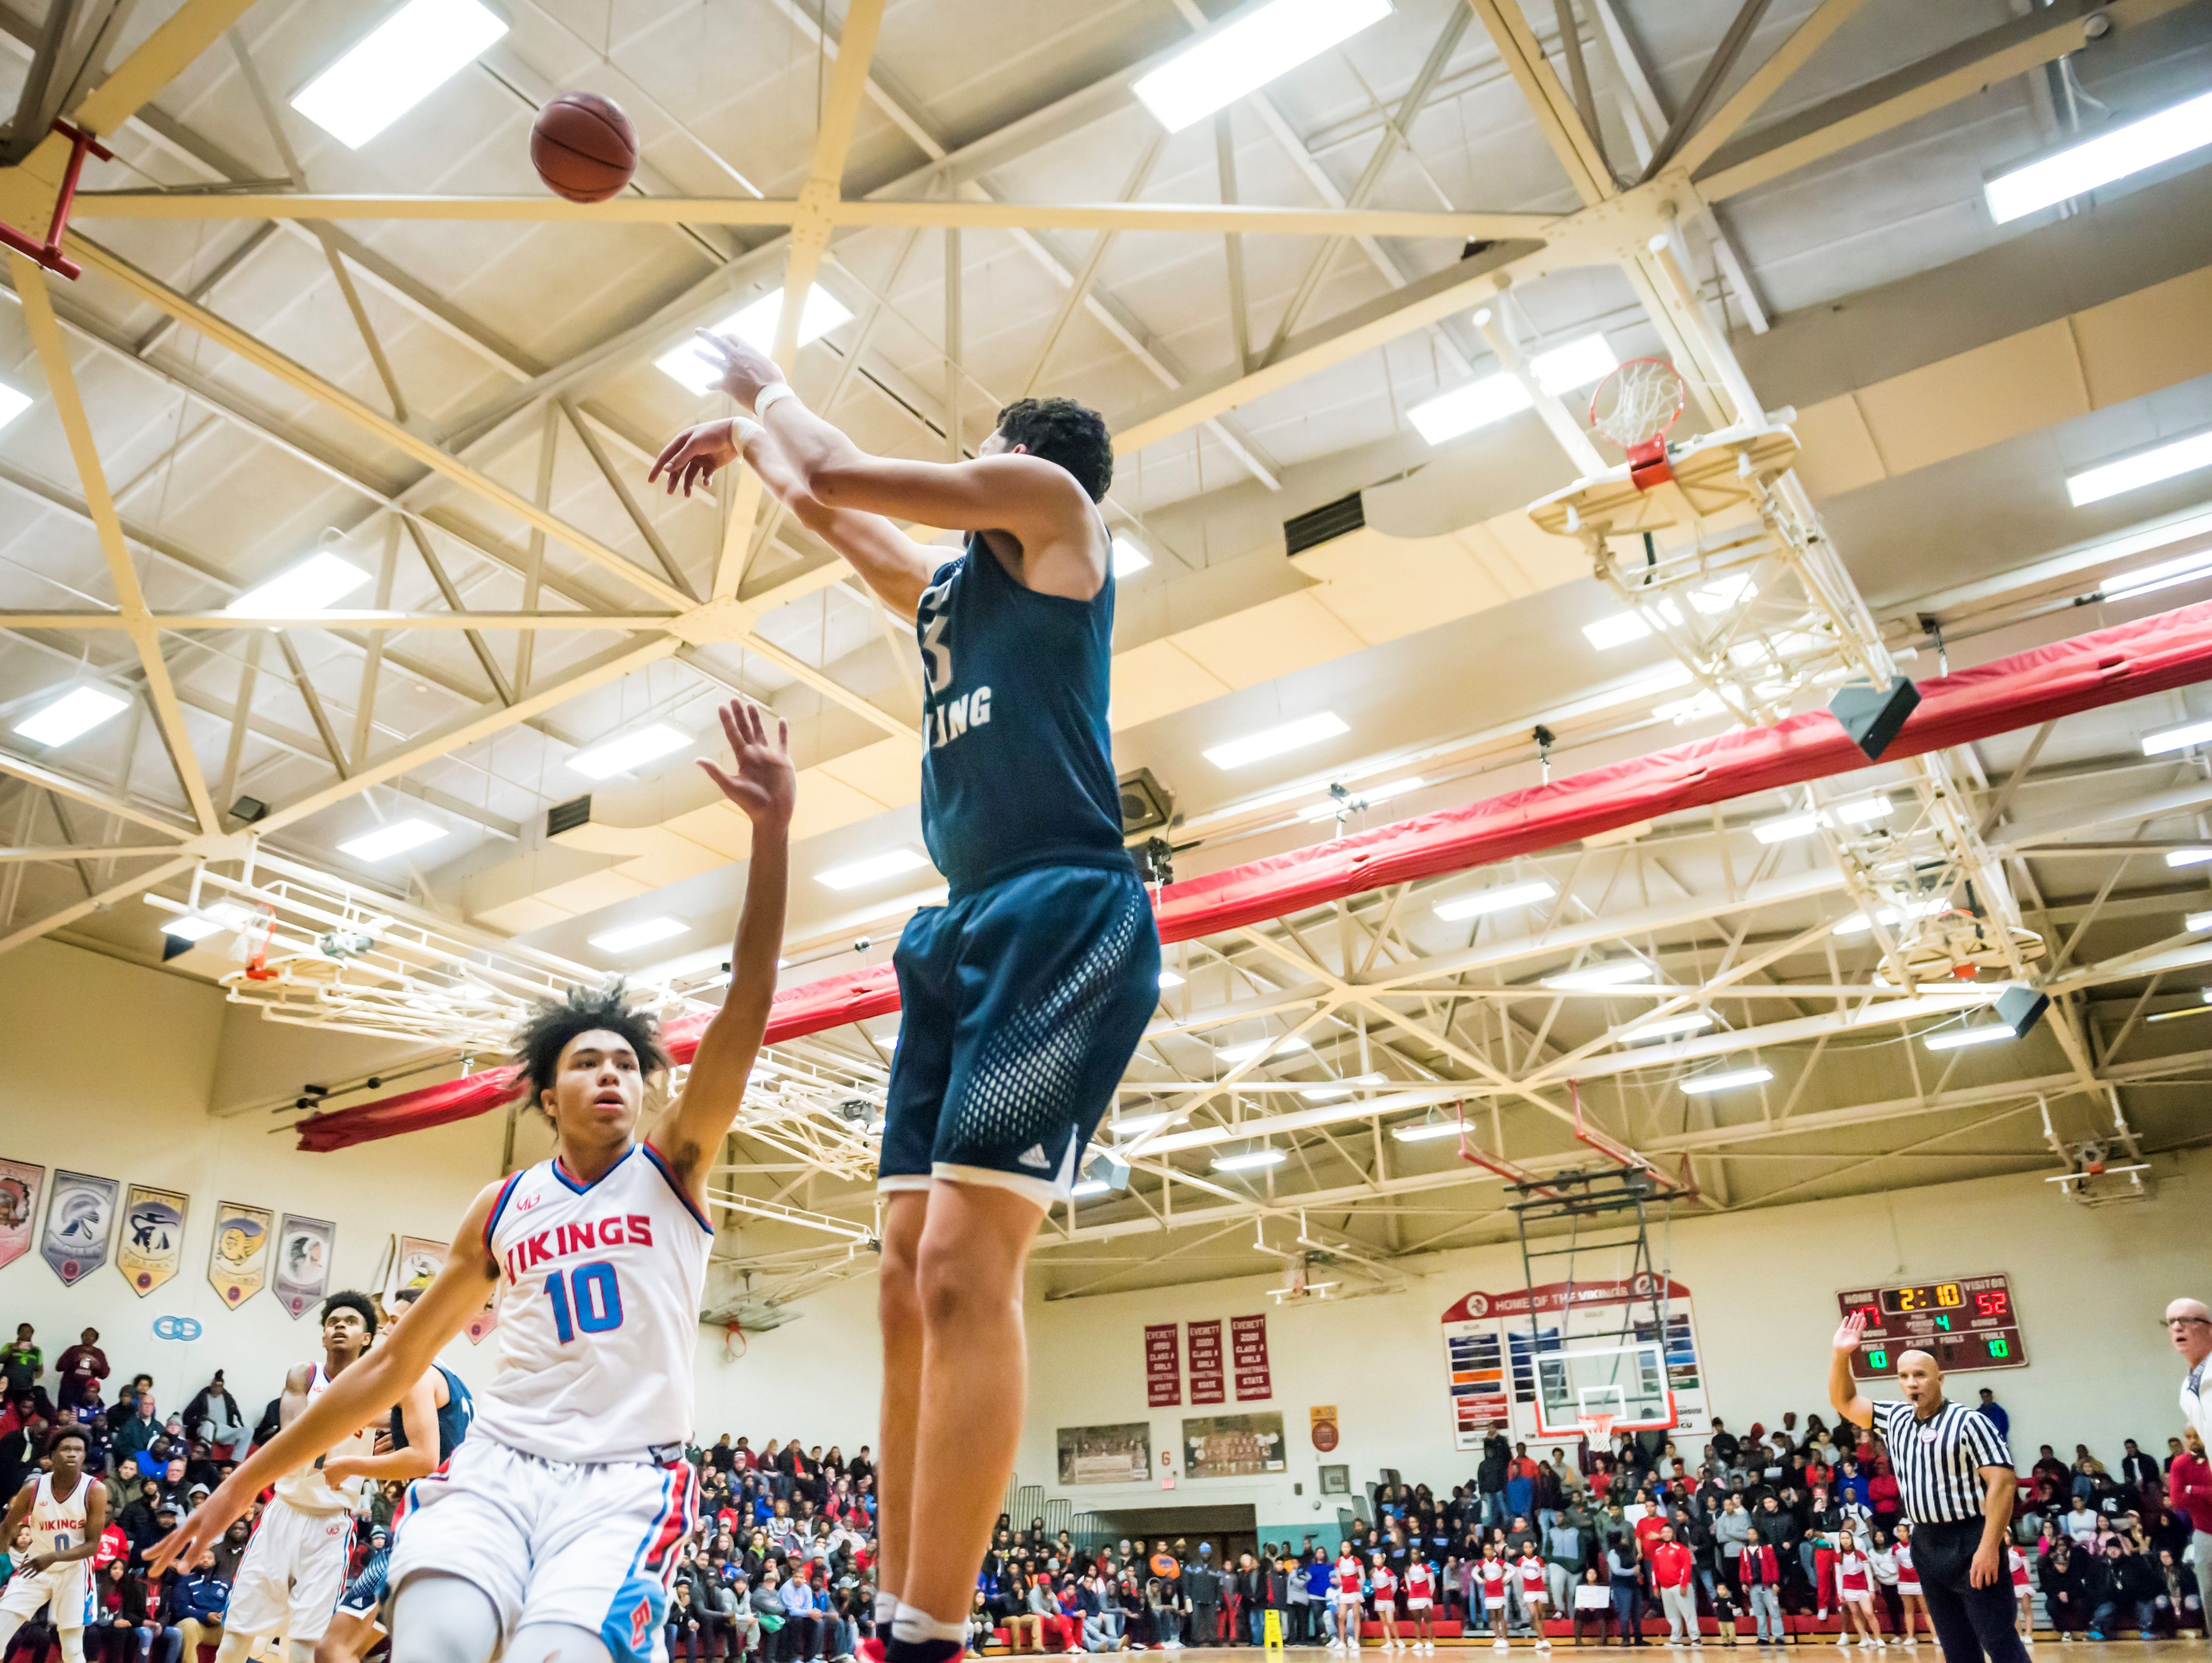 Brandon Johns, top, of East Lansing sinks a 3-point shot over Dante Walton ,10, of Everett with 2:10 remaining in the 4th quarter of their game to put East Lansing up 55-47 Friday, December 16, 2016 in Lansing.